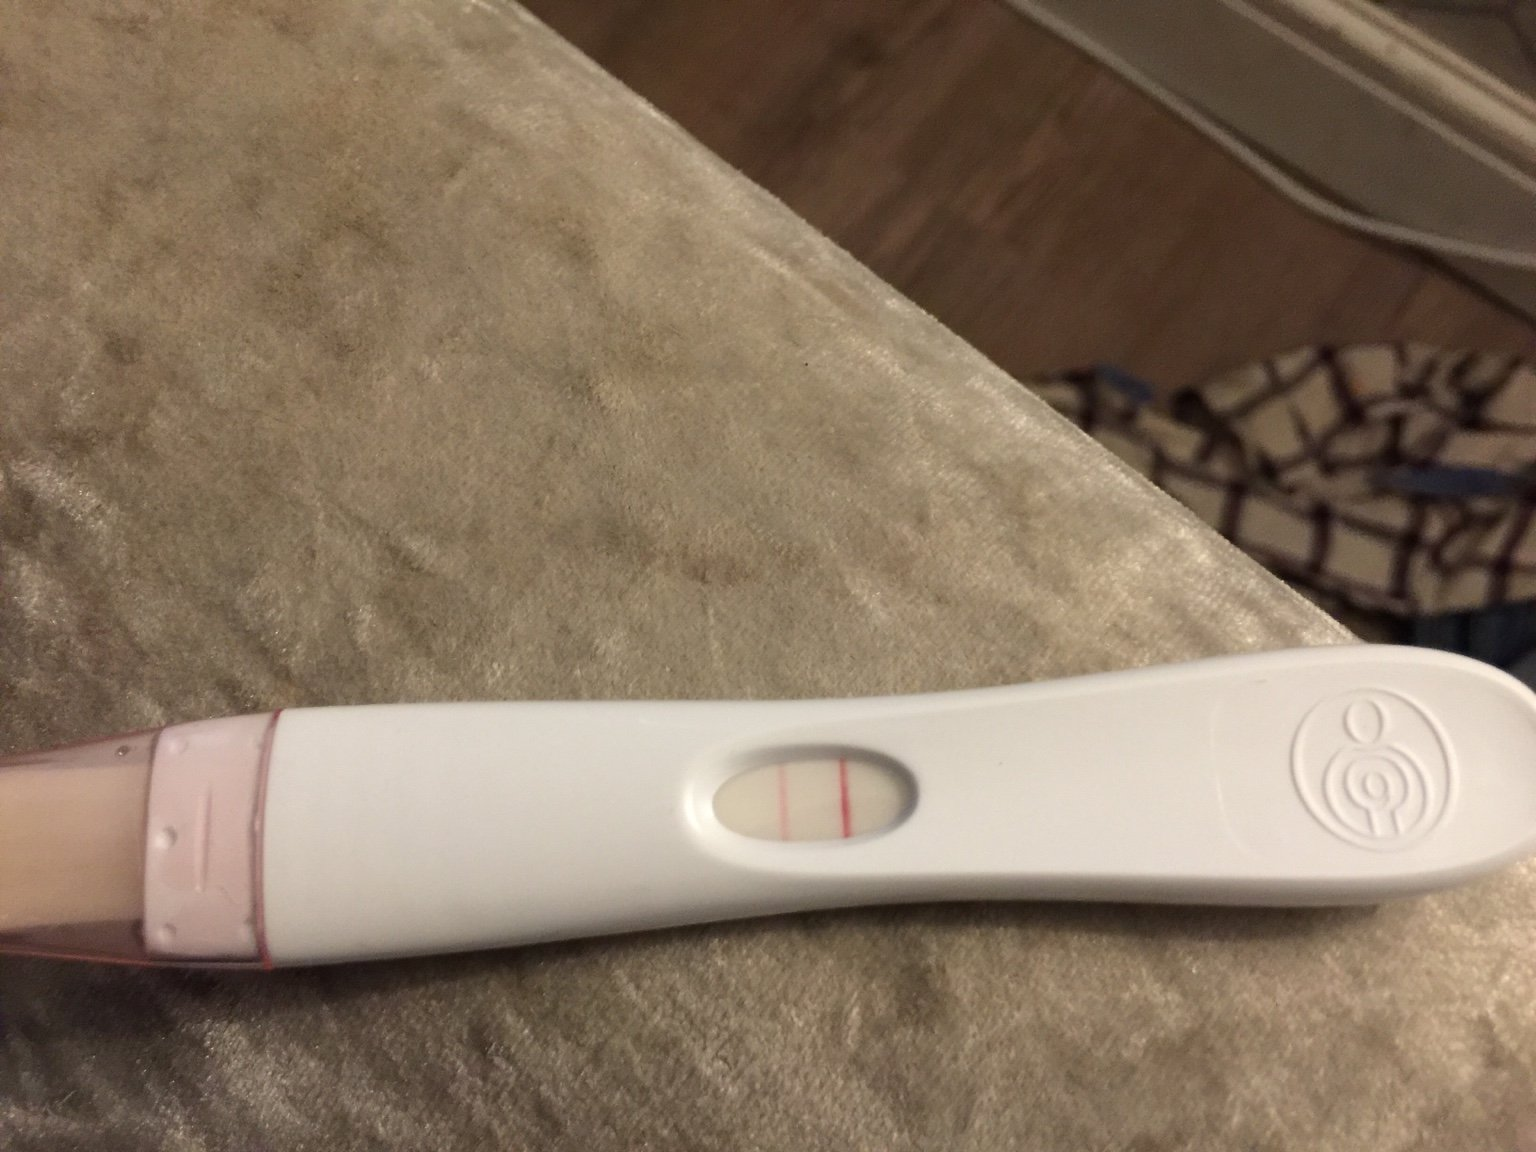 Faint Positive Pregnancy Test - Am I Pregnant